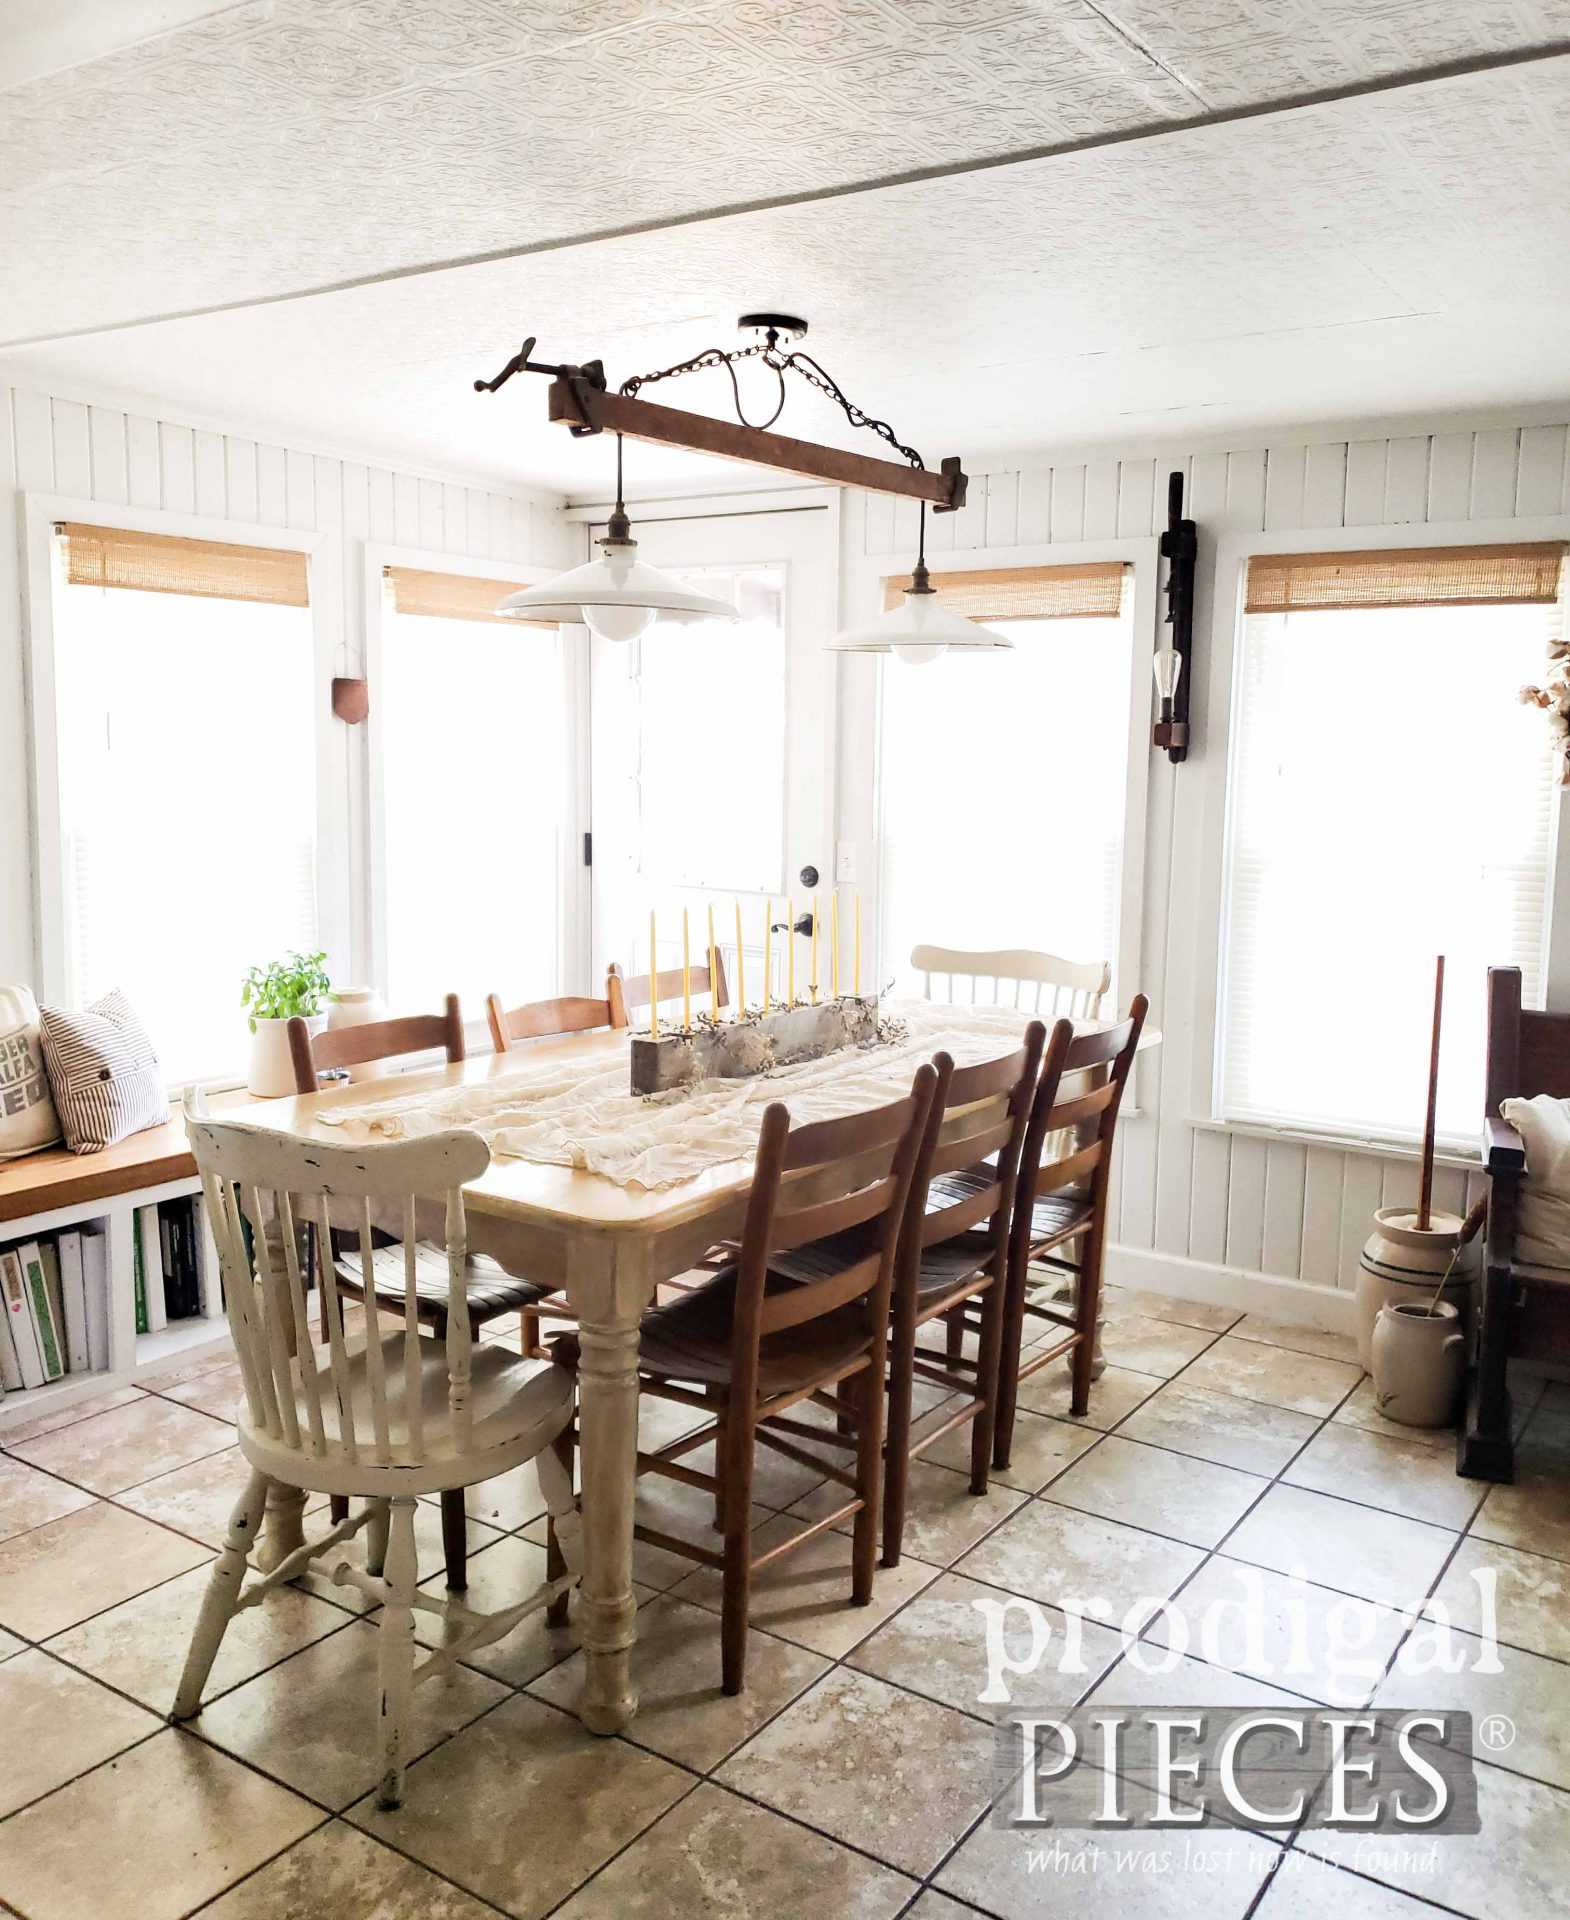 DIY Rustic Farmhouse Dining Room with Handmade Decor by Larissa of Prodigal Pieces | prodigalpieces.com #prodigalpieces #handmade #home #diningroom #homedecor #farmhouse